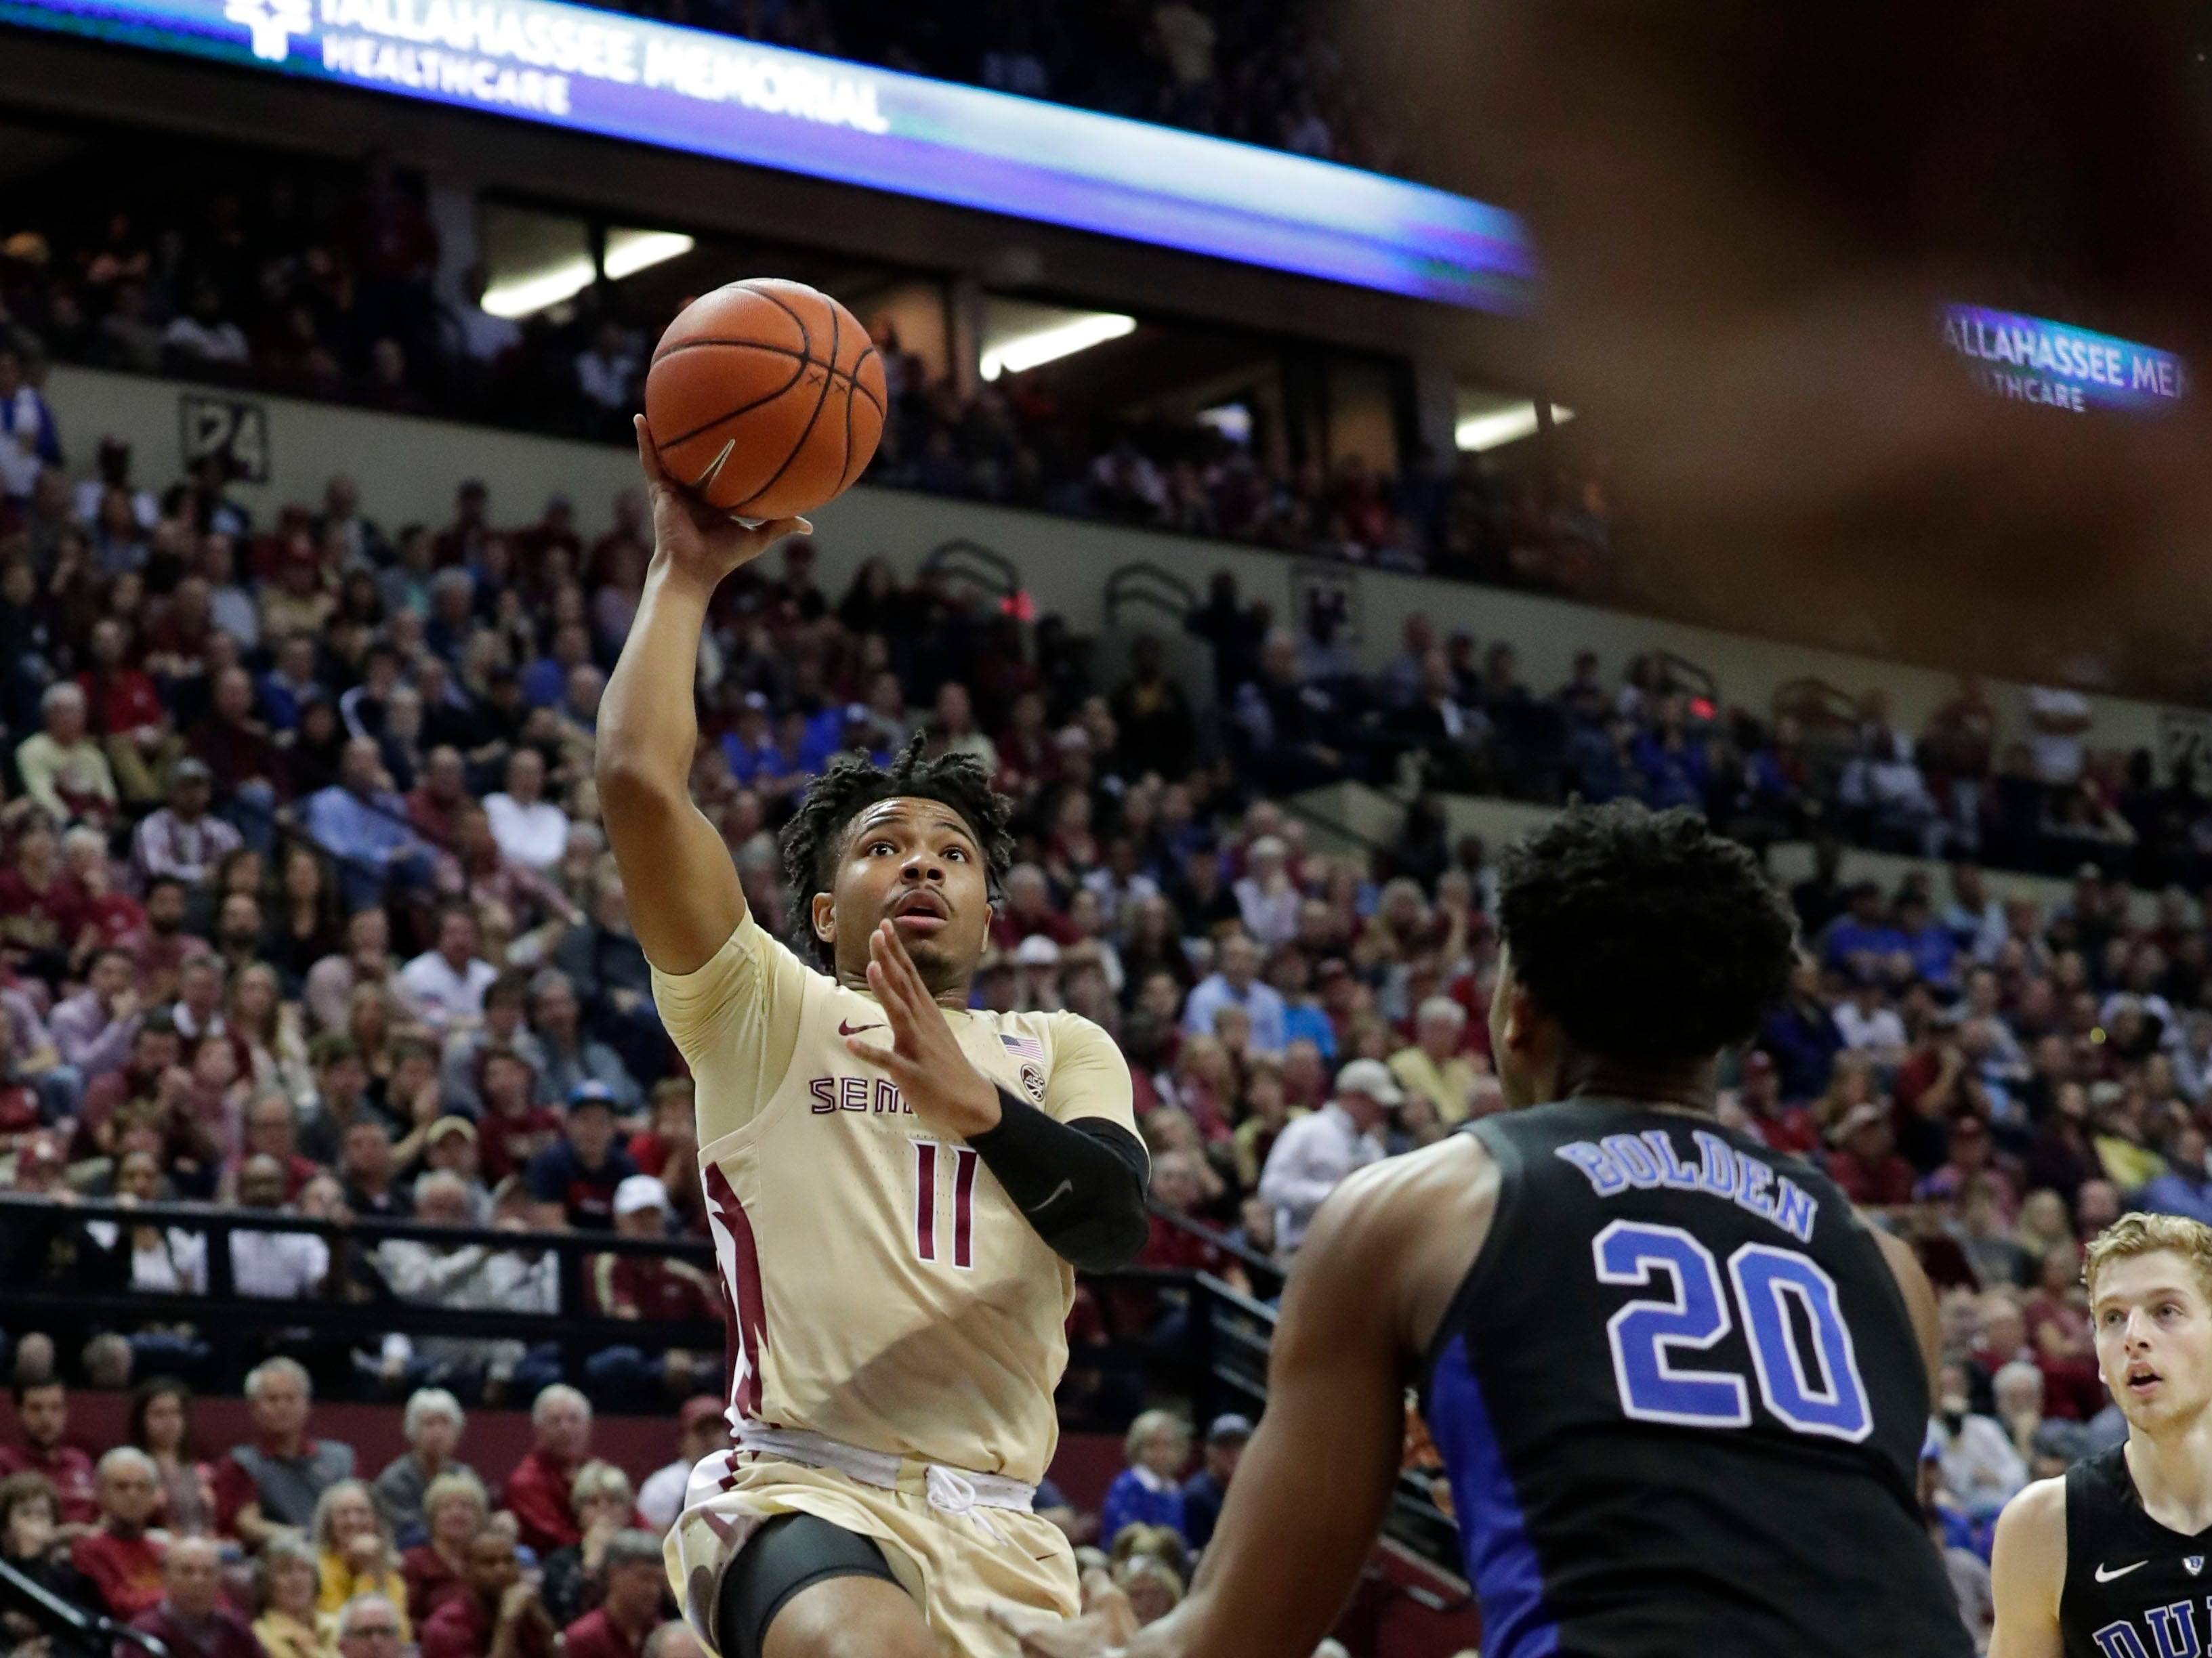 Florida State Seminoles guard David Nichols (11) shoots for two over Duke Blue Devils center Marques Bolden (20). Ranked 13 in the ACC, the Florida State Seminoles host the number 1 team, the Duke Blue Devils, at the Tucker Civic Center, Saturday, Jan. 12, 2019.